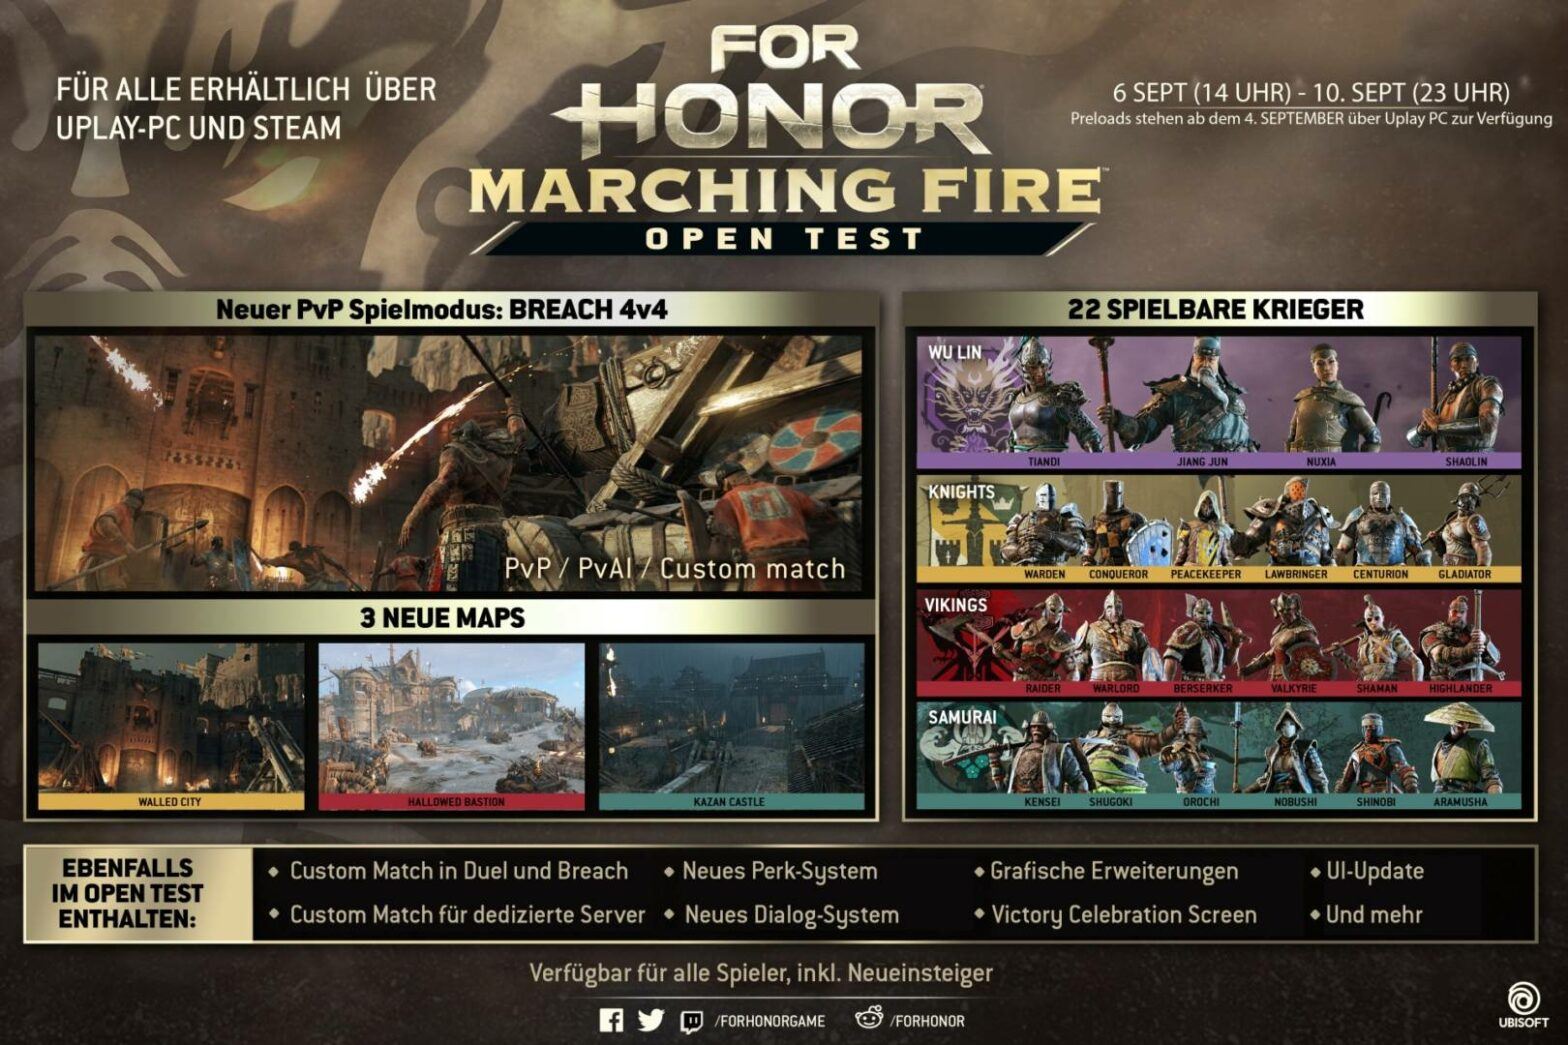 Open Test für For Honor: Marching Fire